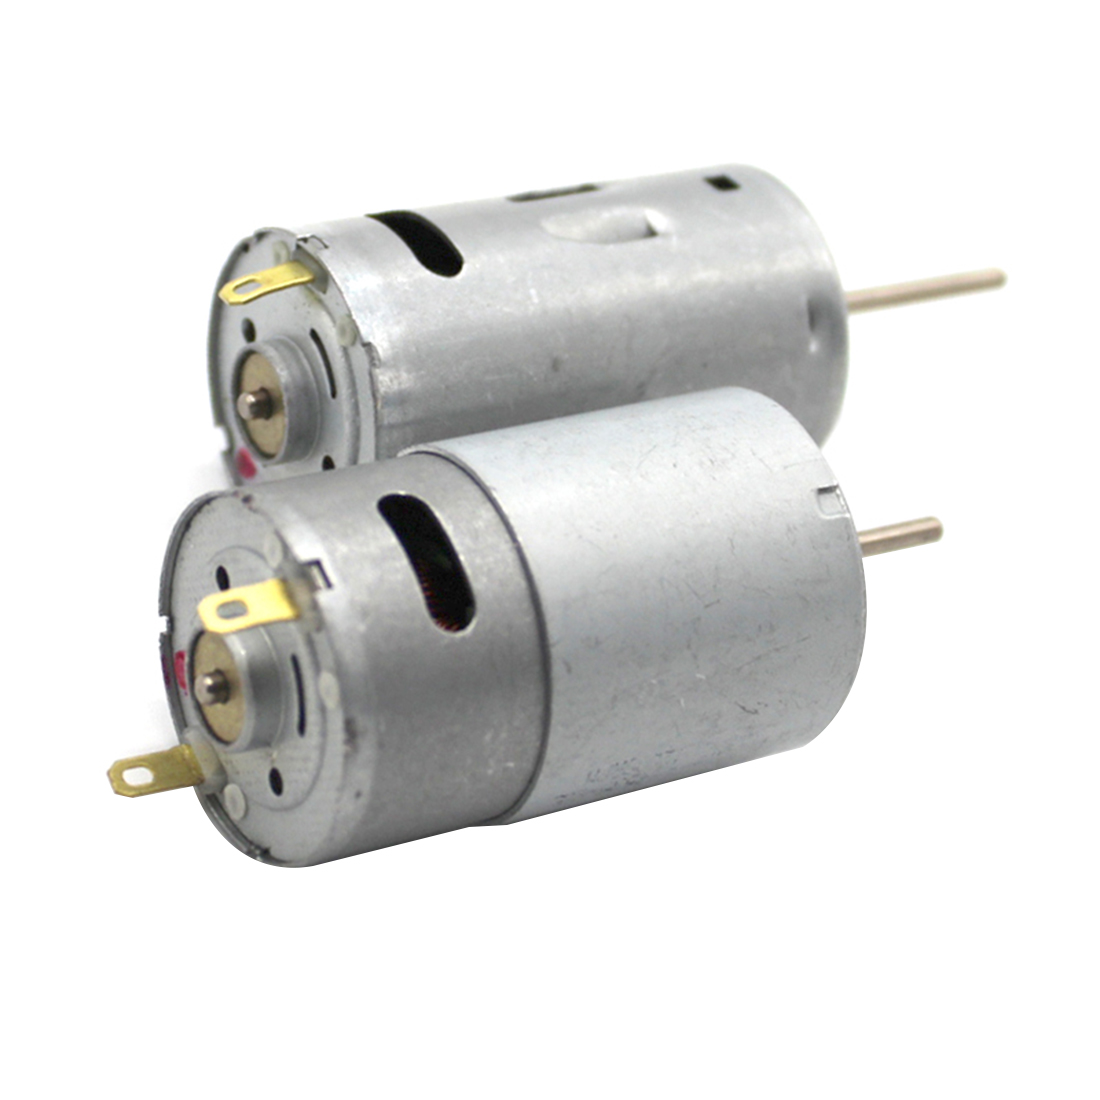 Feichao Long Axis 390 Motor High Speed Magnetic Carbon Brush DC Motor High  Torque 6V 12V DIY Micro Drill Motor 2PCS